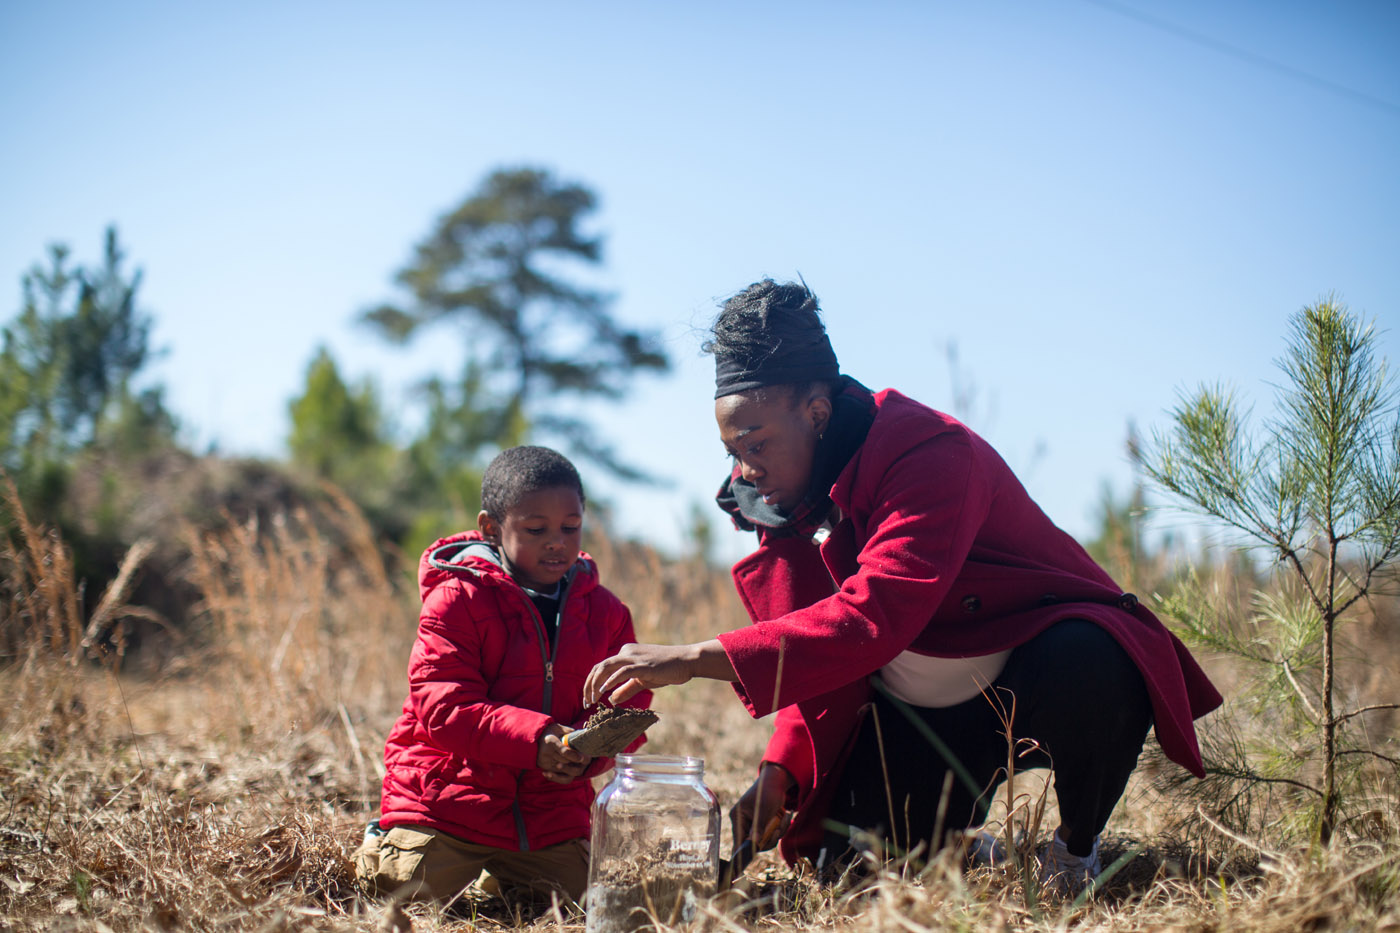 Floyd, Ala - 02-12-16 - Julia Ware, 25, collects soil at the sight where a black man named Berney was lynched, on Nov 10, 1912. Her nephew, Jai Lee, 3, tagged along. She was one of many volunteers who colleced soil collecting for the lynch site project for the Equal Justice Initiative. - Credit Photo by Ozier Muhammad